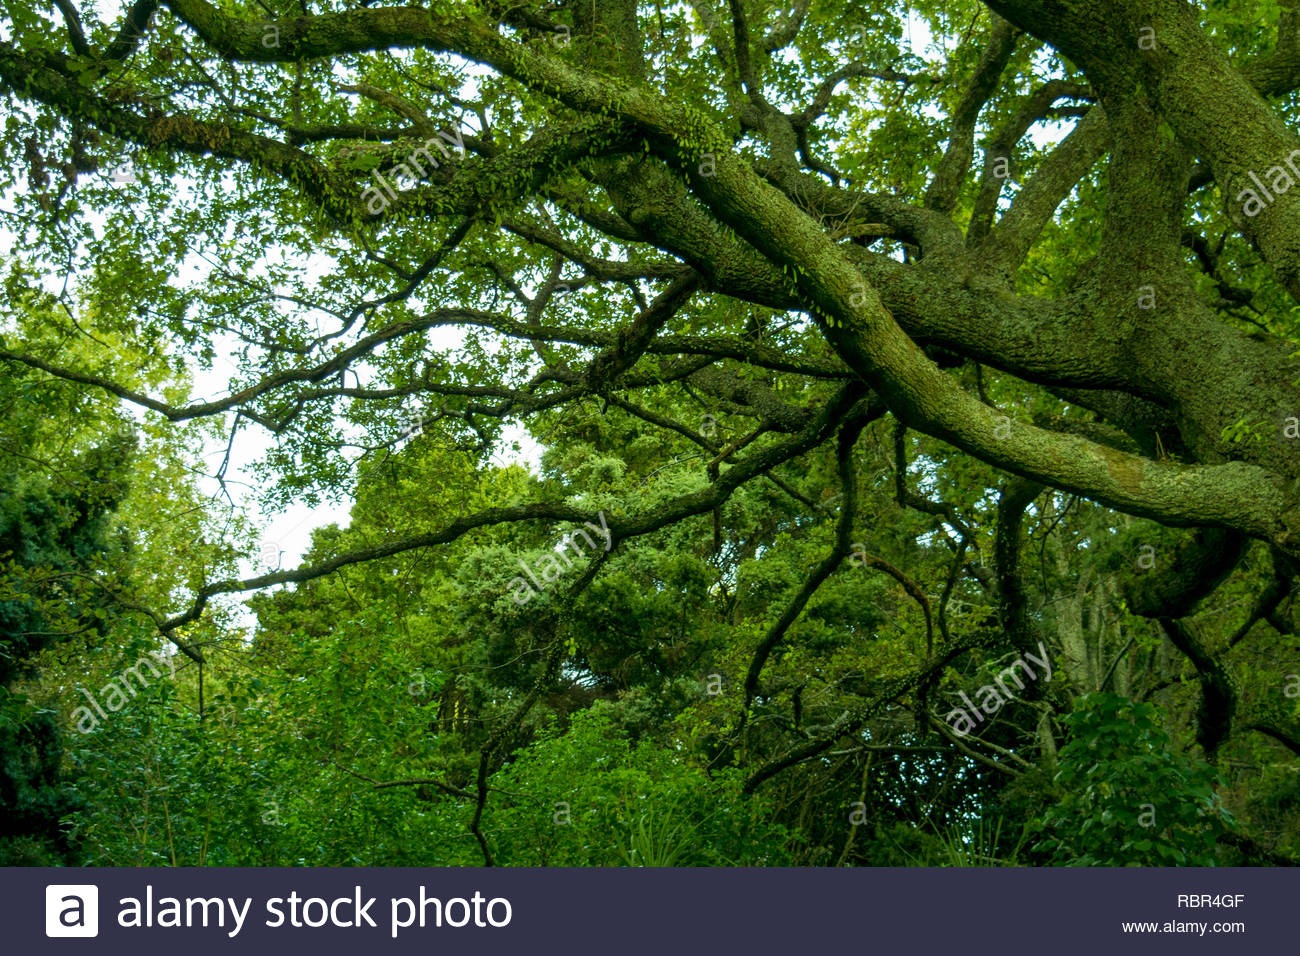 Lush tree branches at Mt Eden - Stock Image